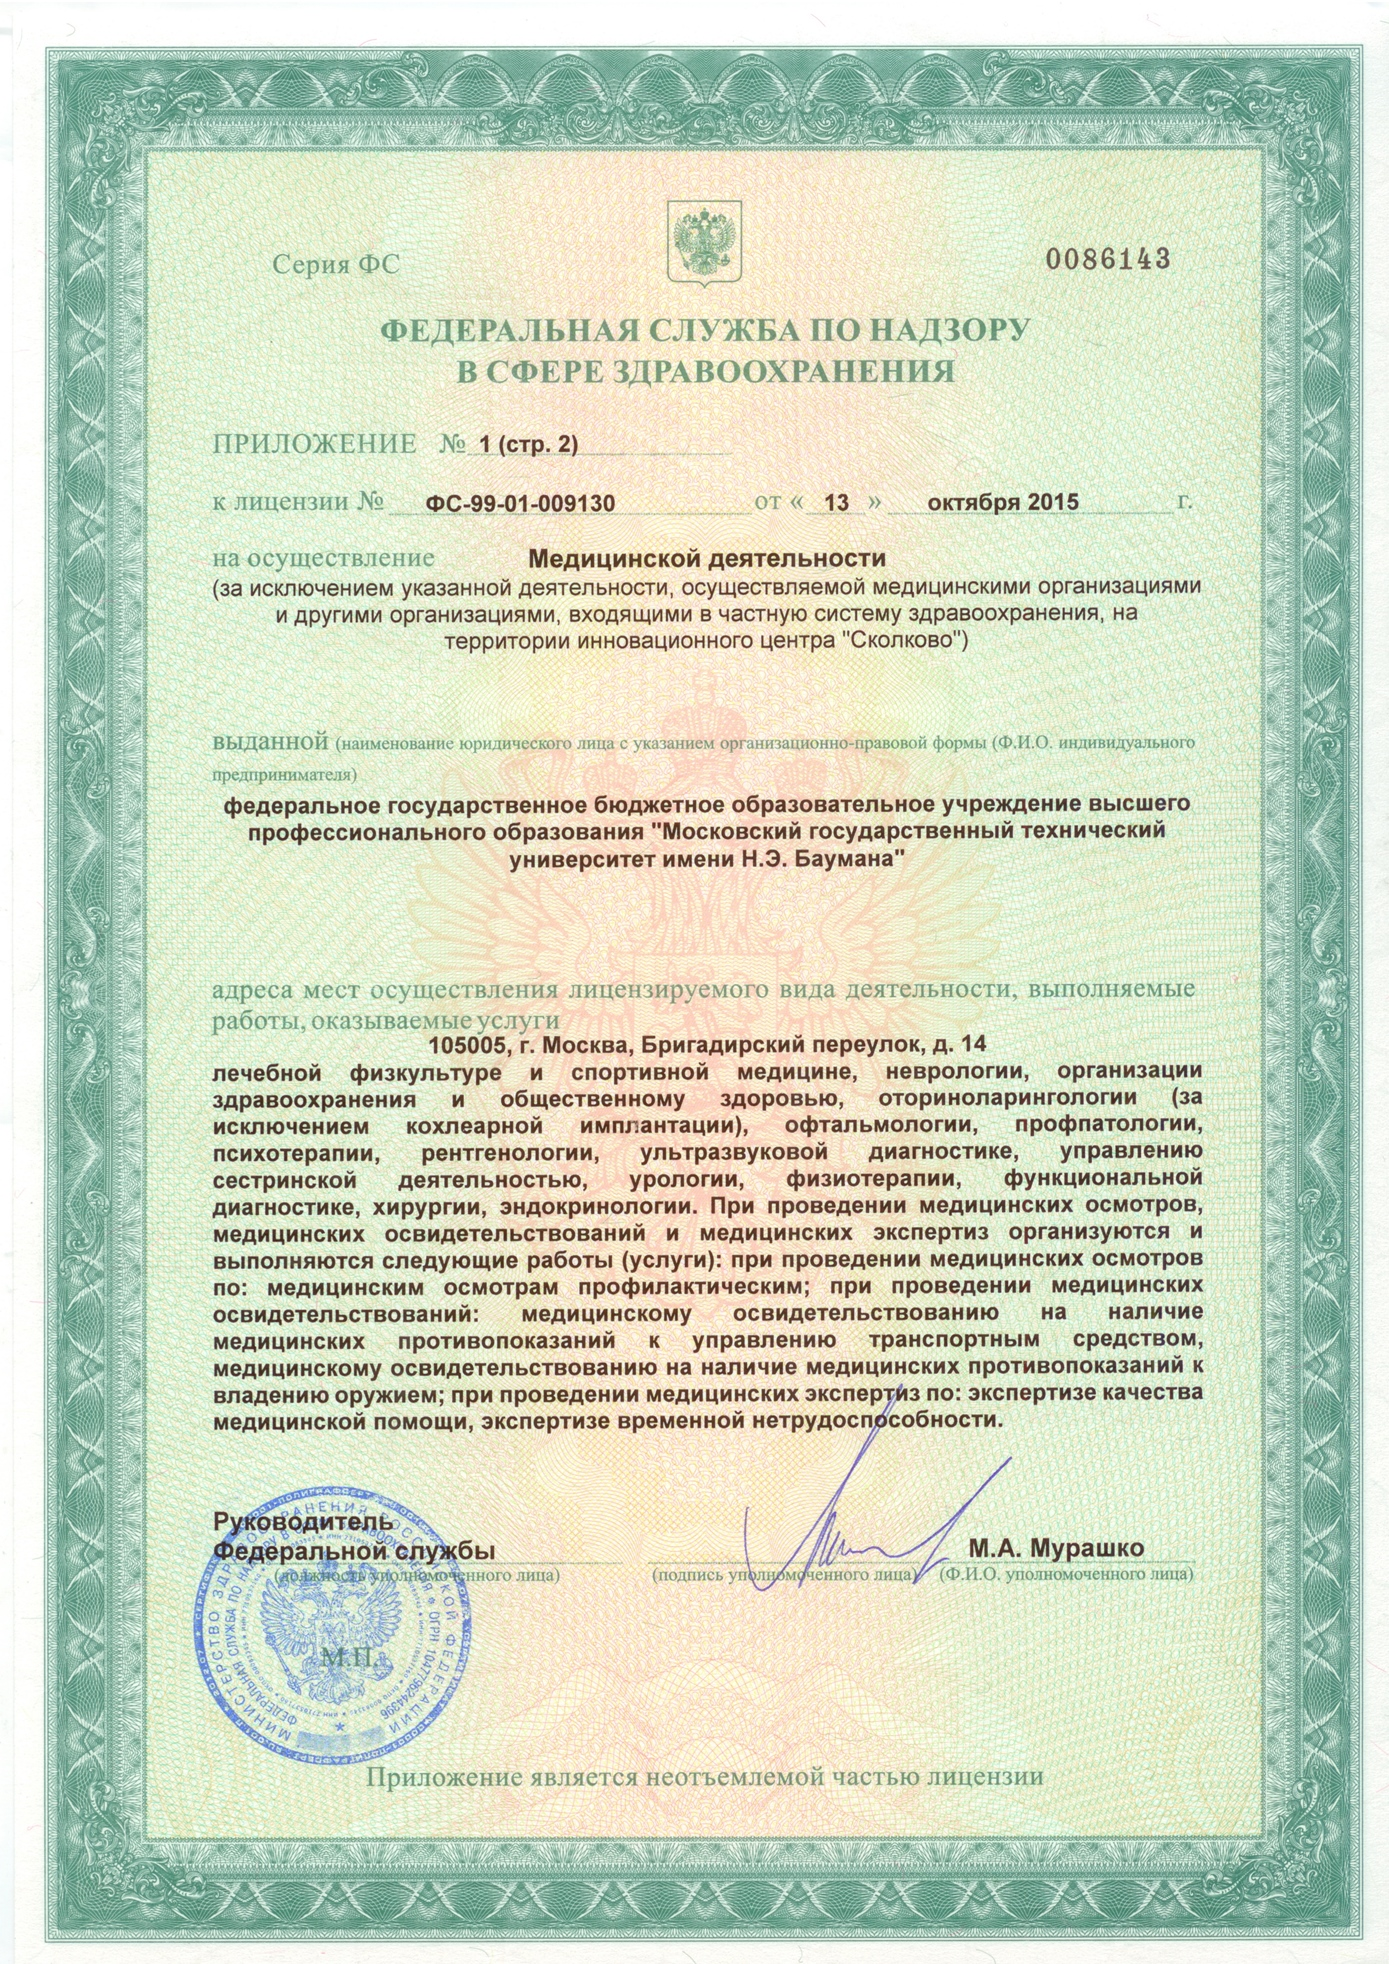 NOMTC license 4.jpg